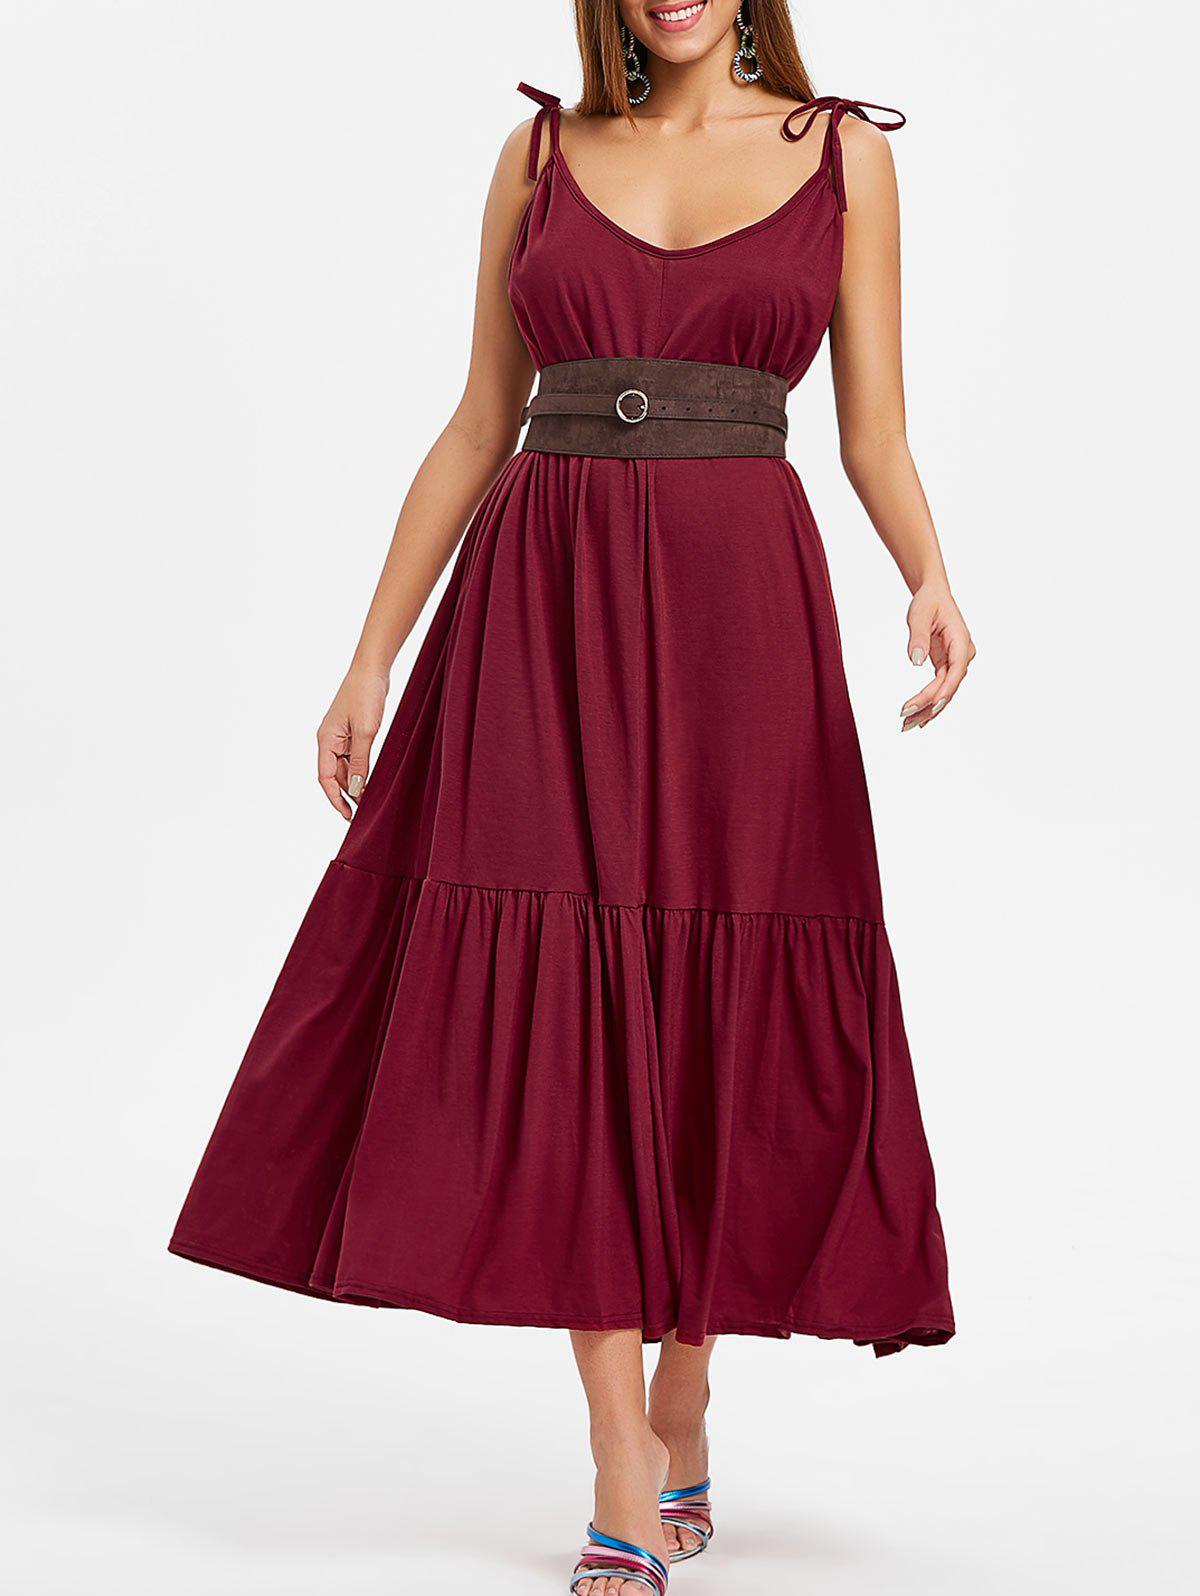 Buy Lace Up Shoulders Floor Length Dress